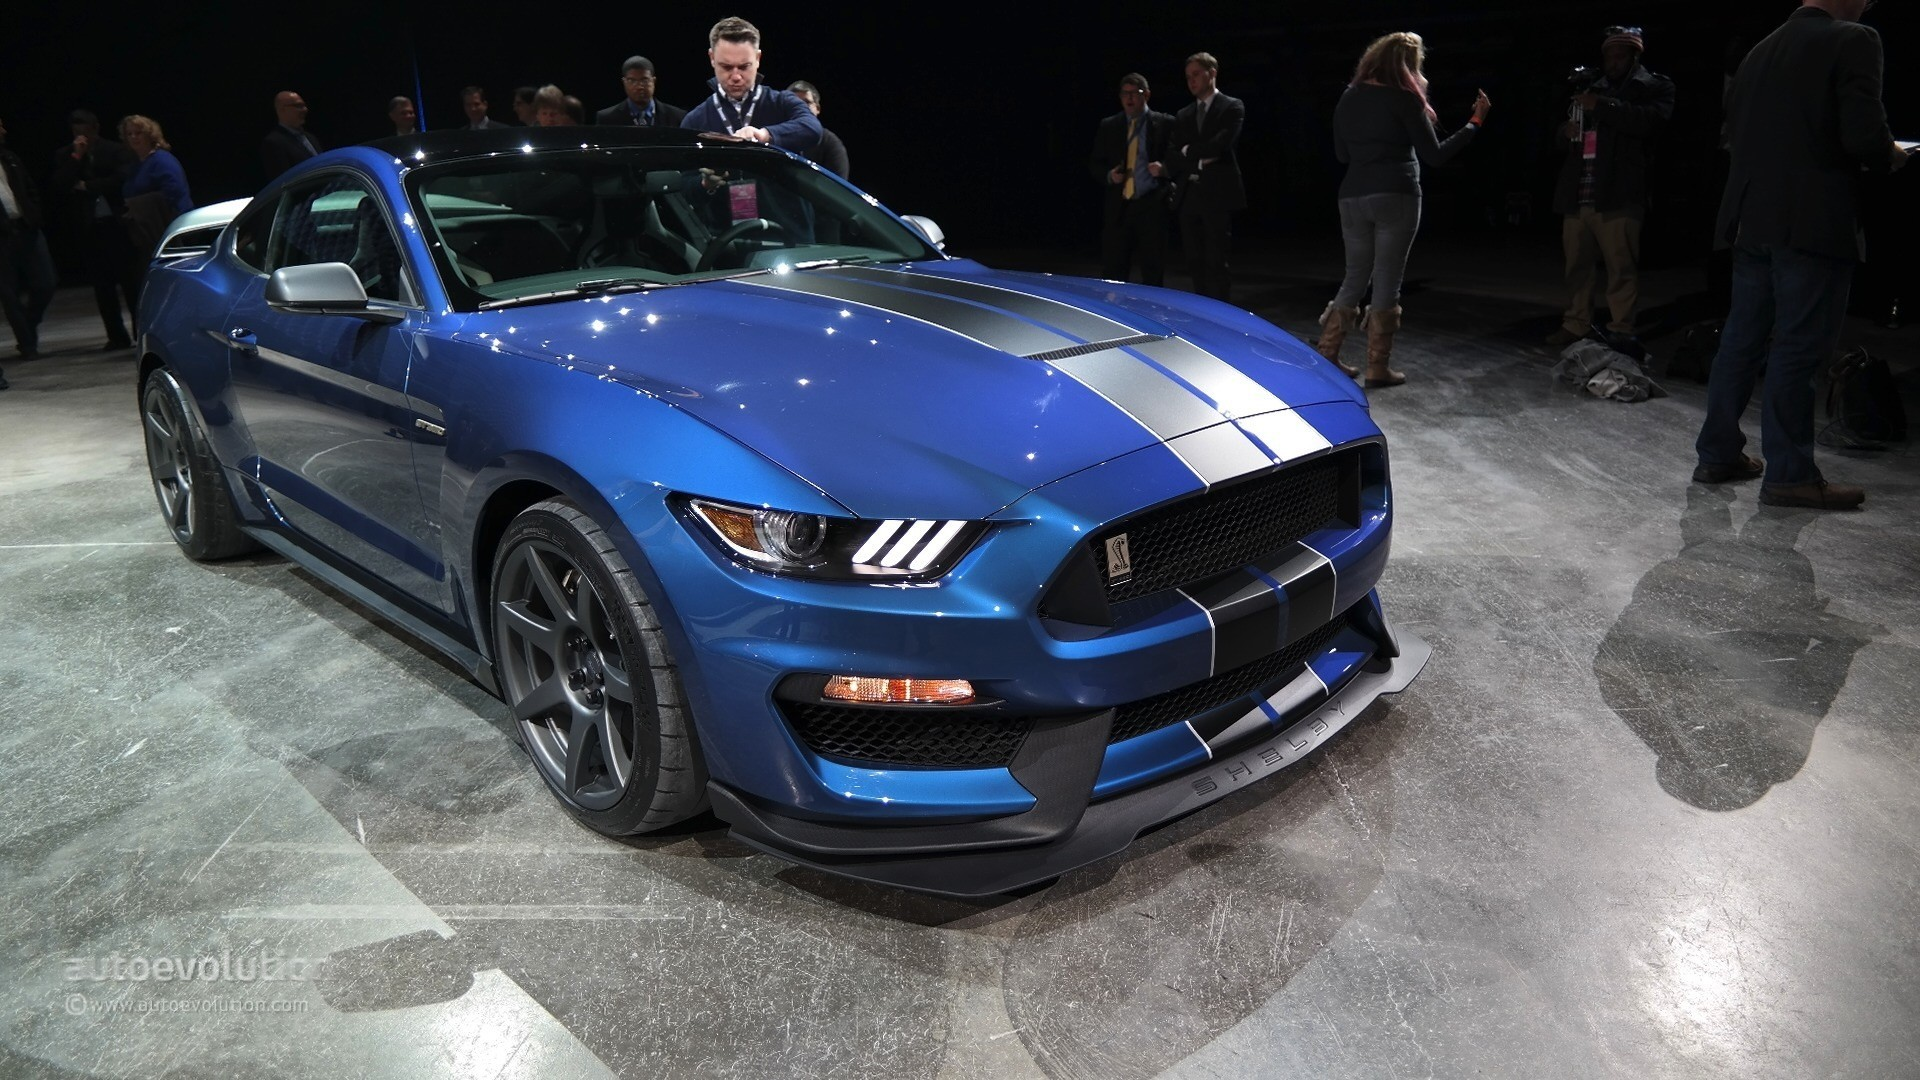 2016 shelby gt350 mustang develops 526 horsepower video. Black Bedroom Furniture Sets. Home Design Ideas